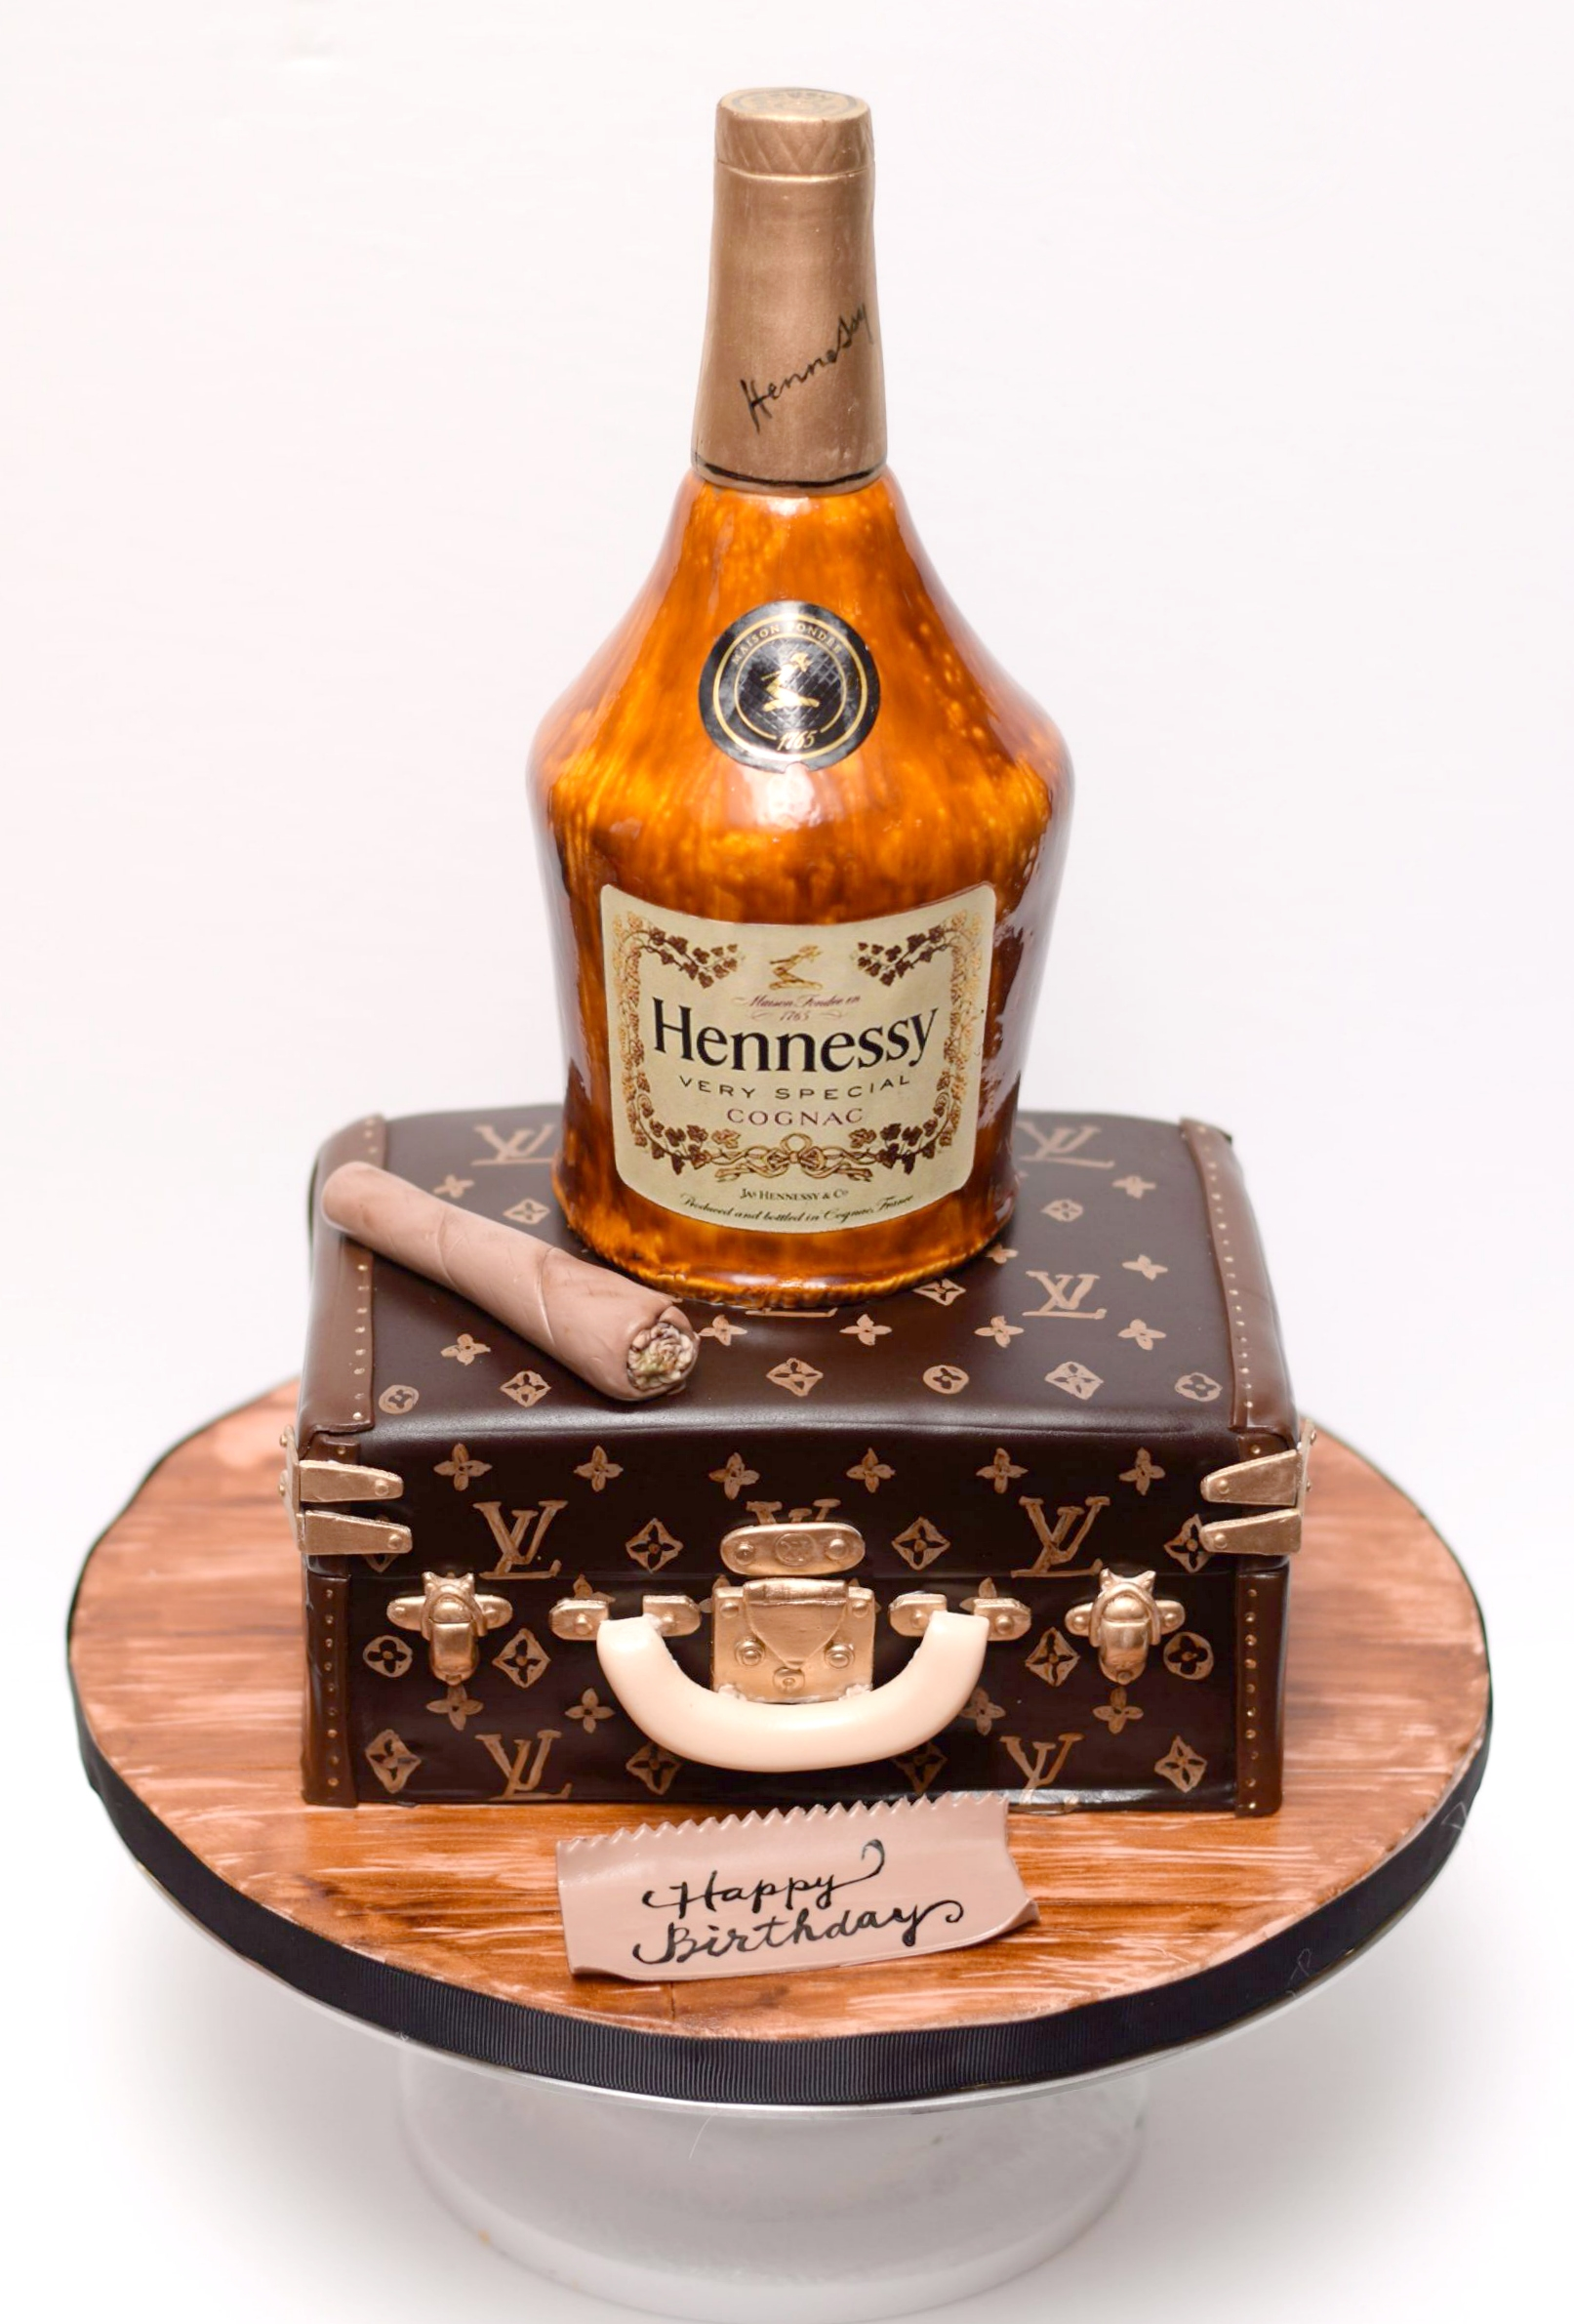 Whiskey bottle shaped fondant birthday cake